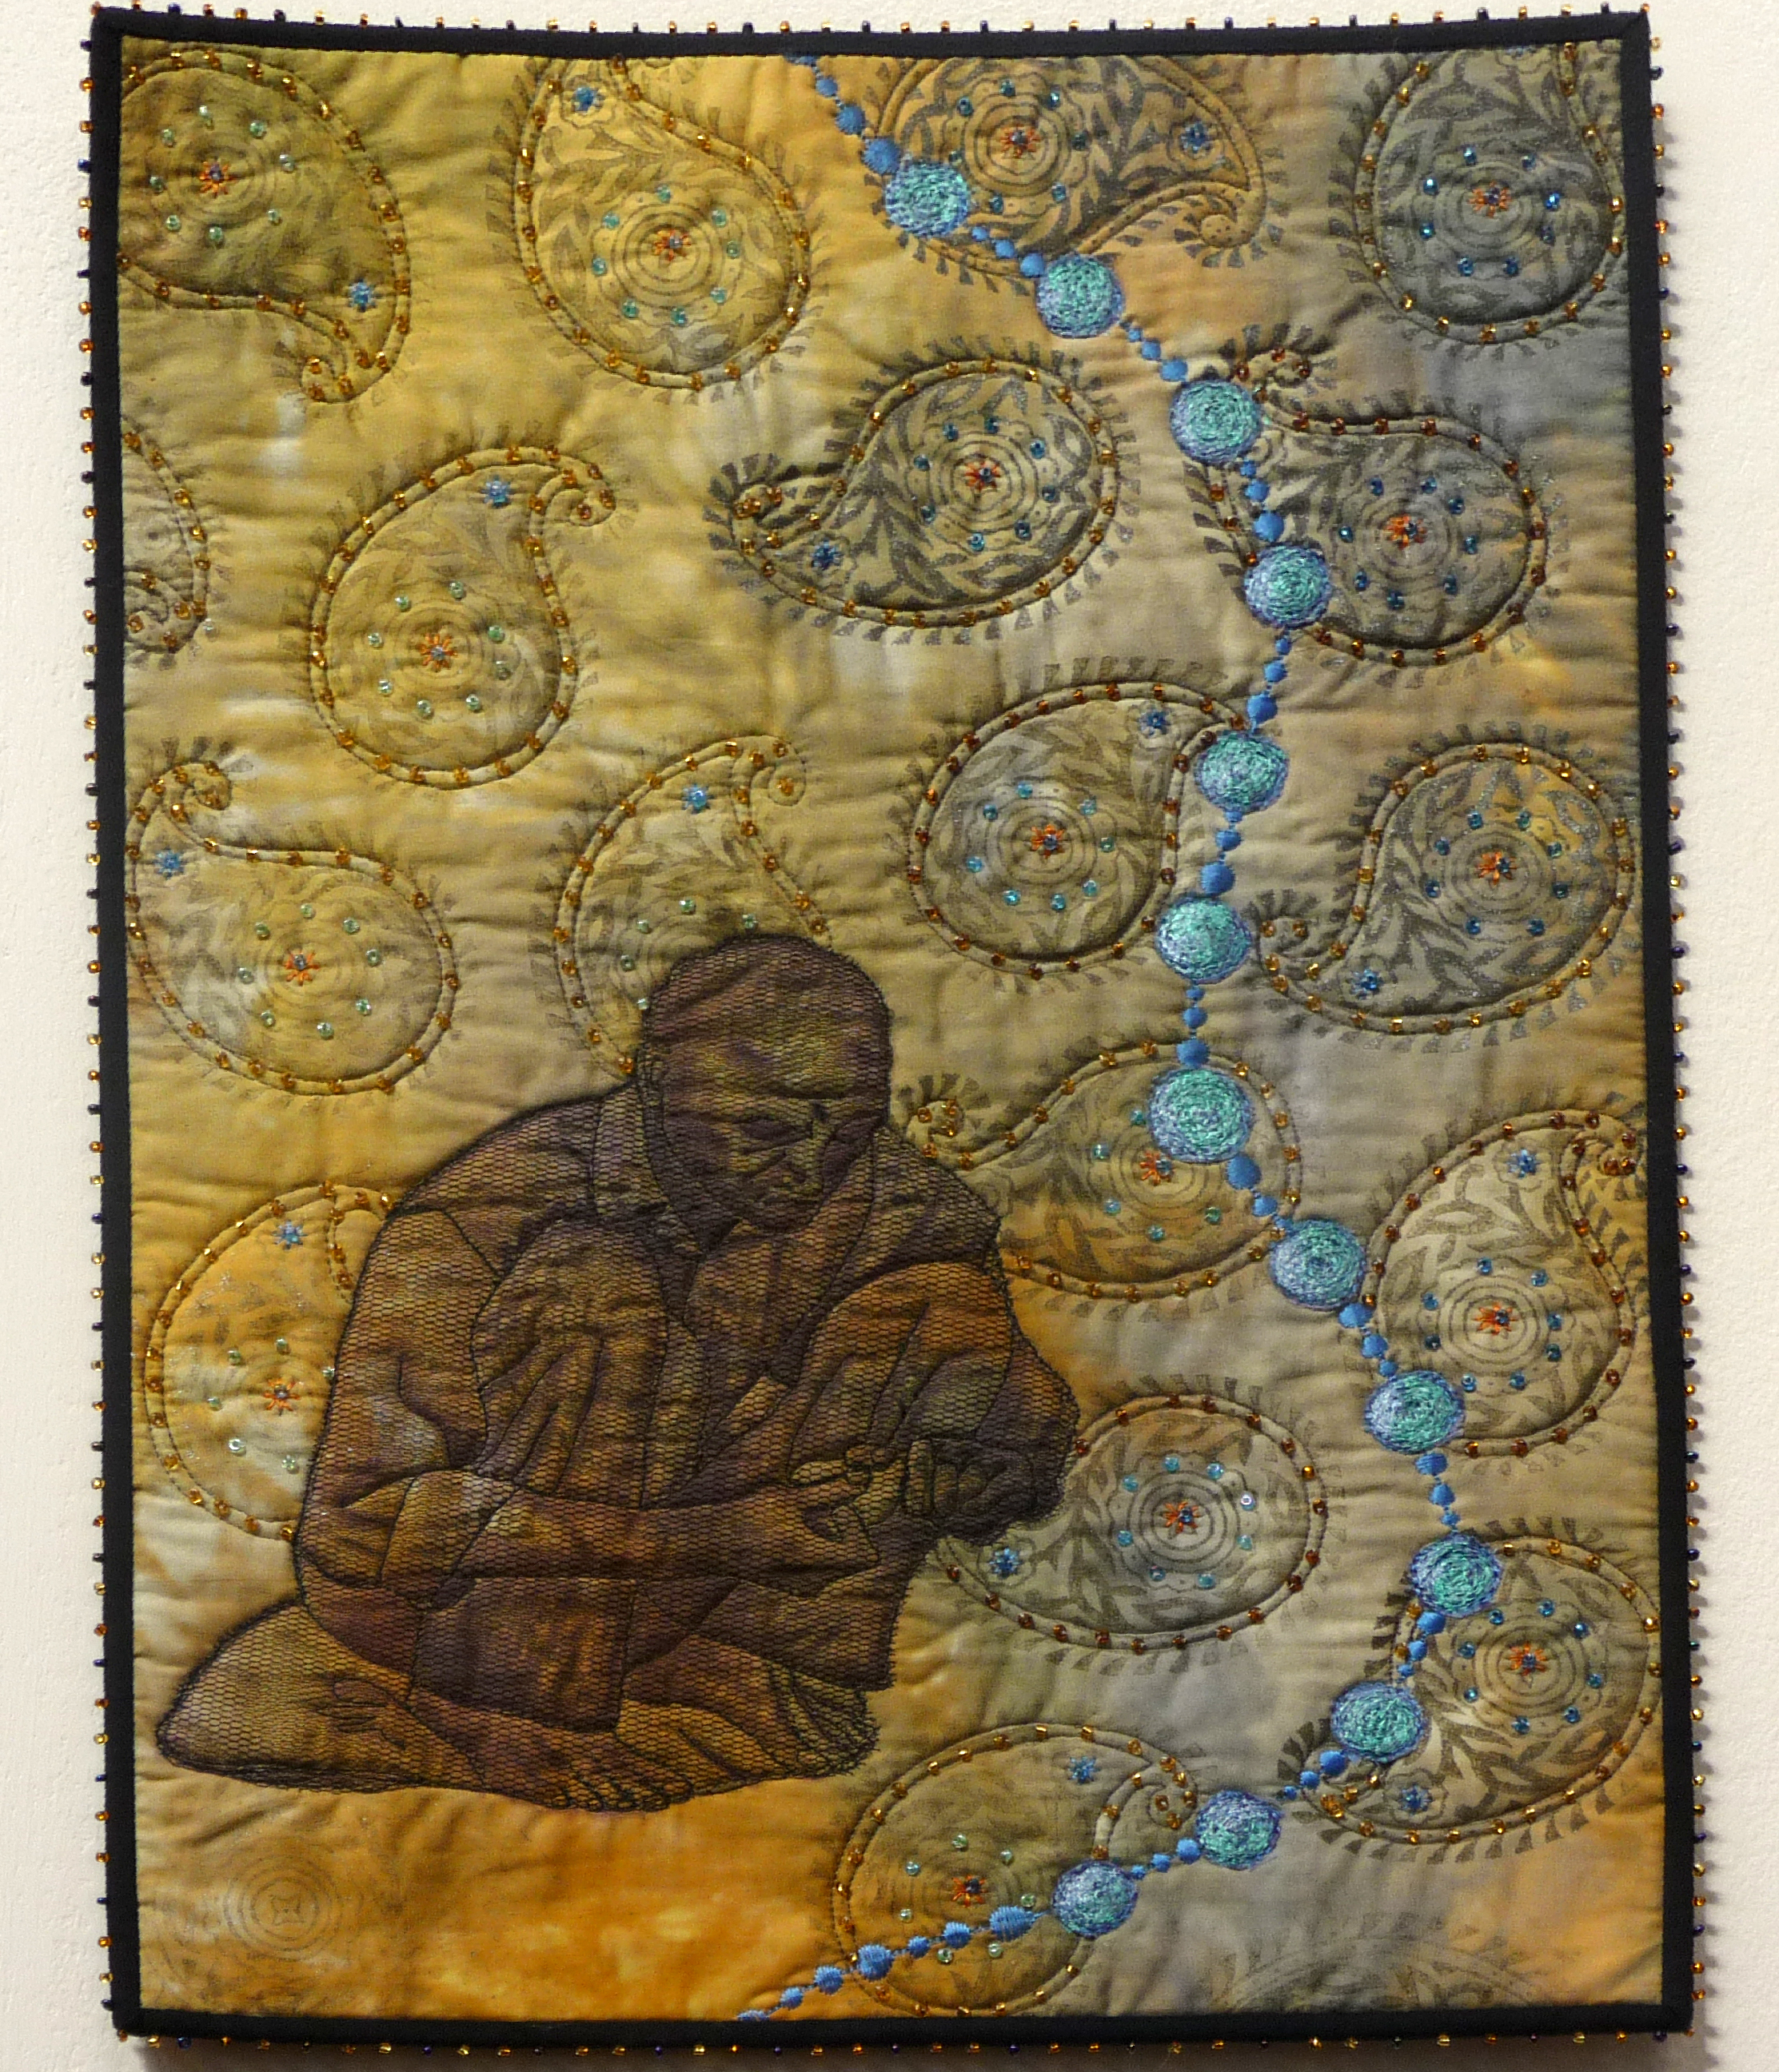 THE BEAD MAKER by Pat Archibald from Vayage Art Textiles